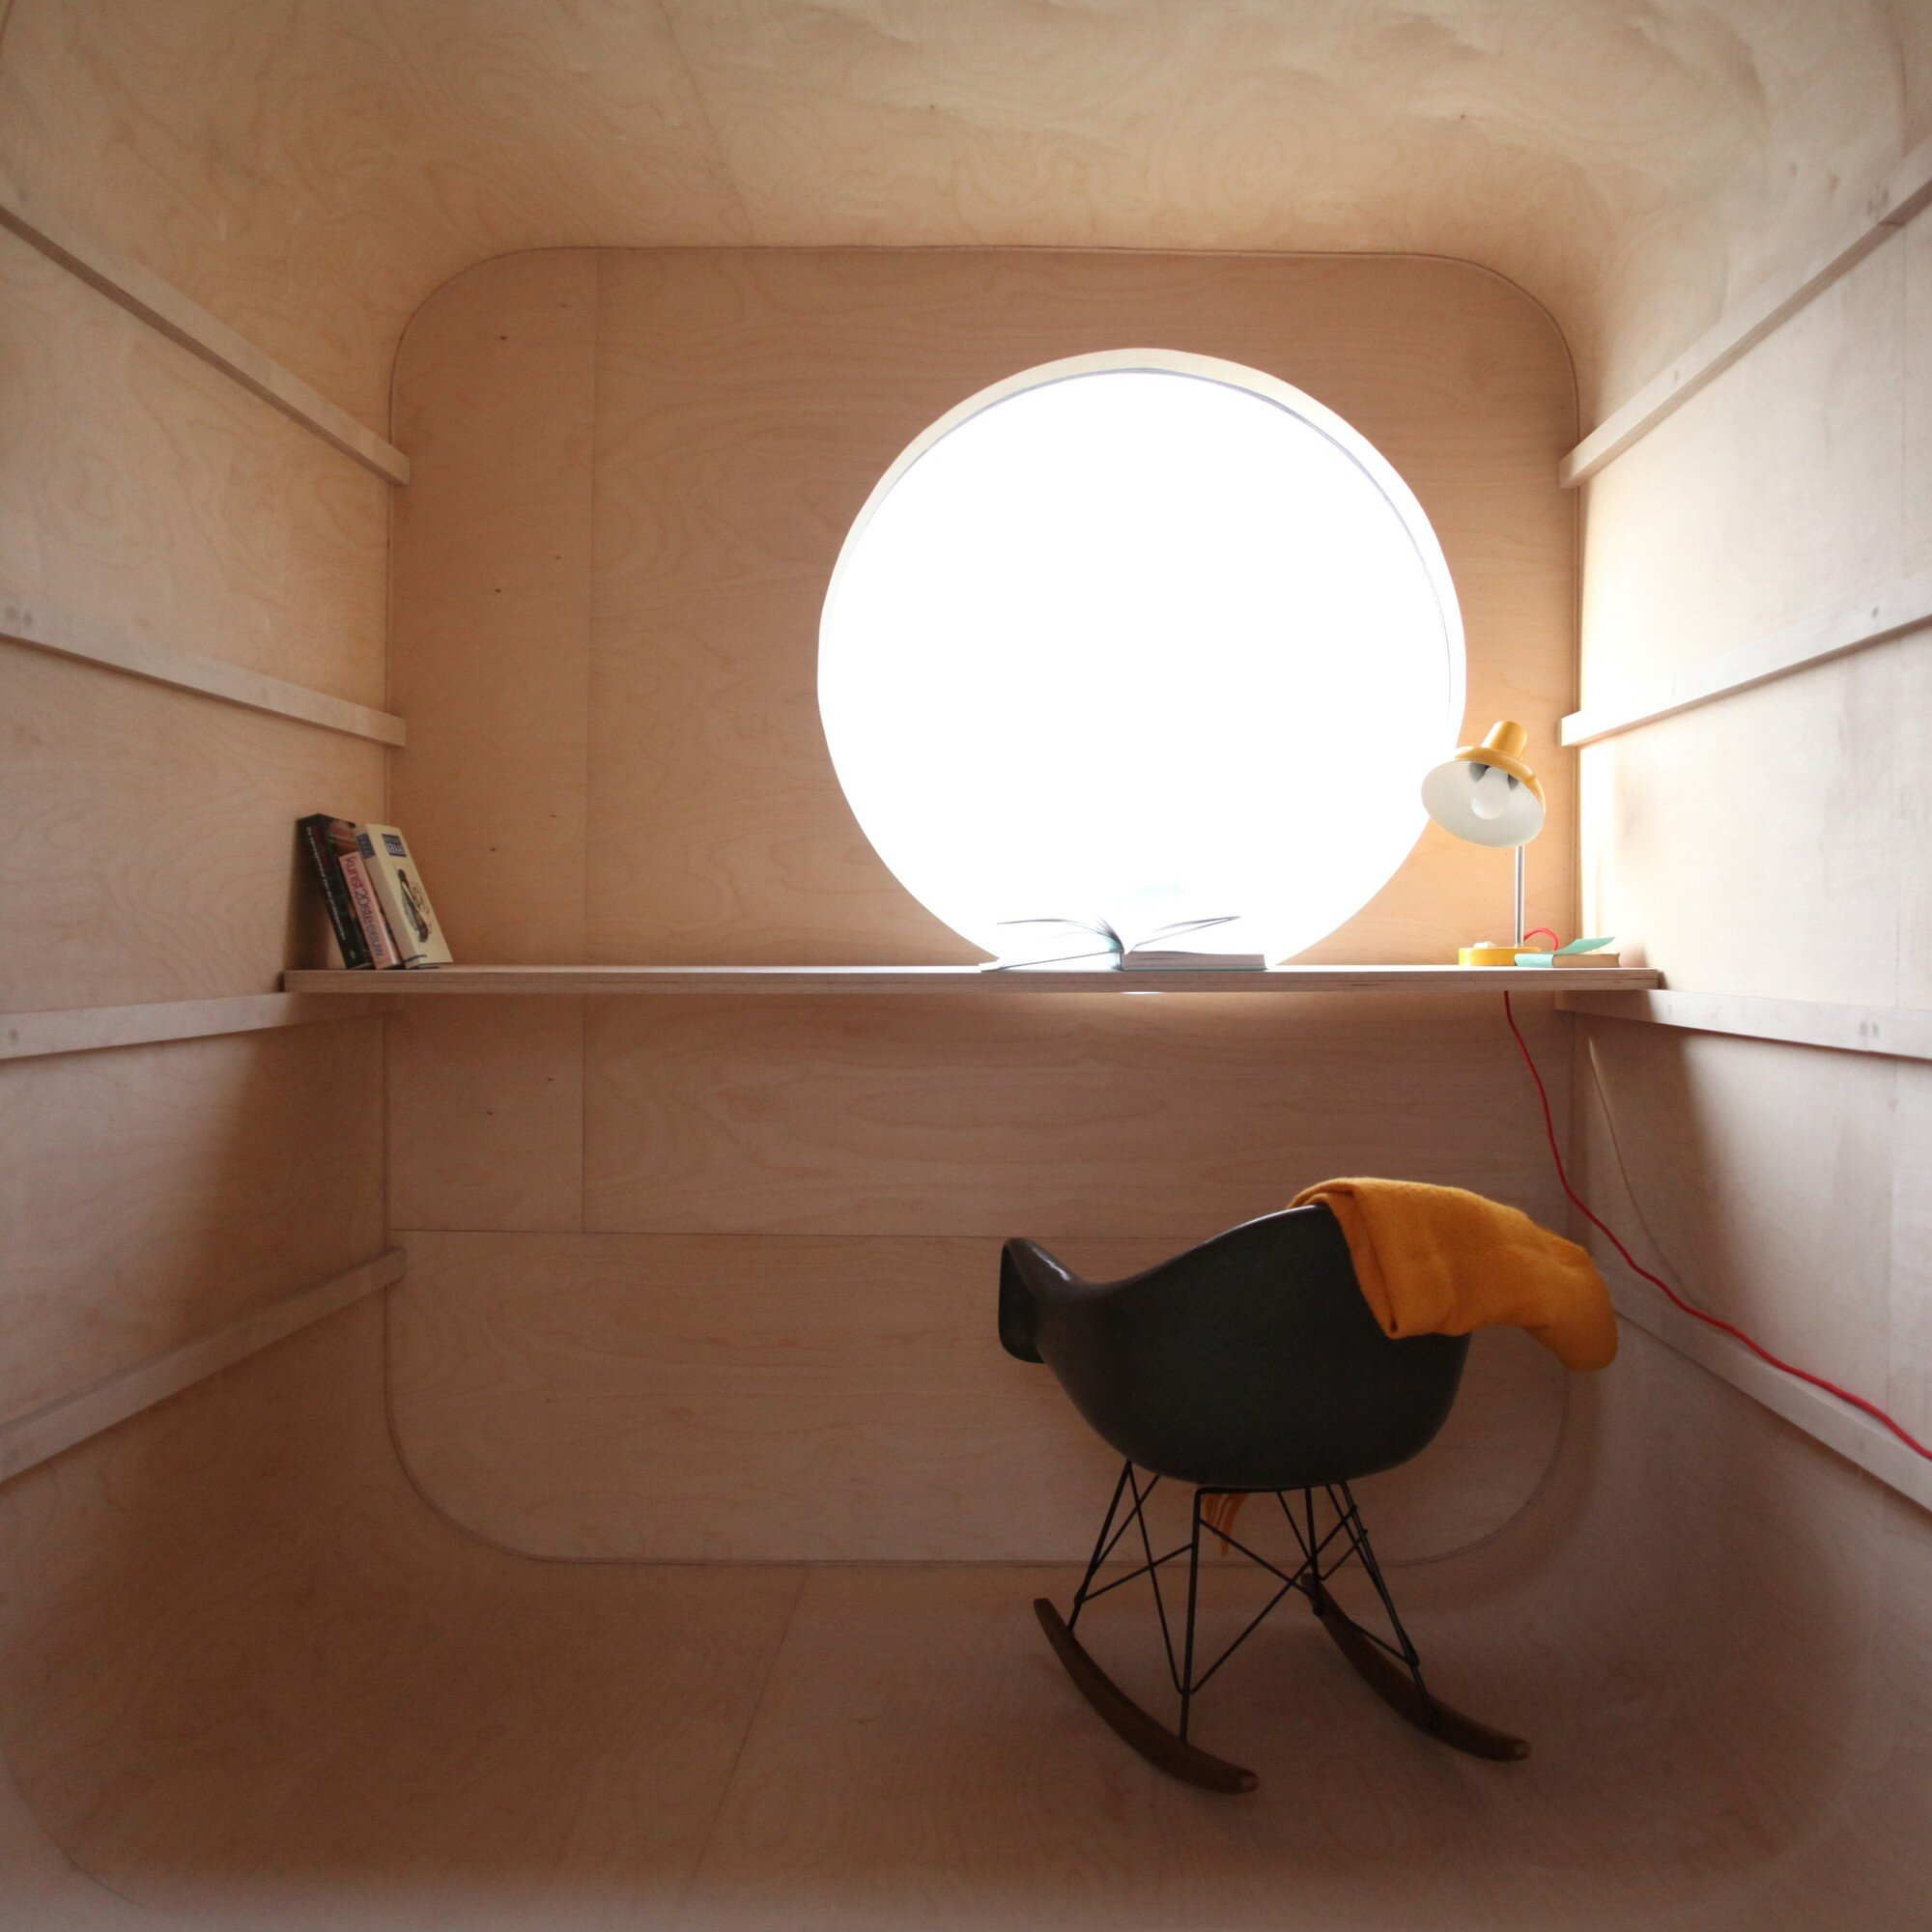 Construction Trailer Conversion - Karel Verstraet - Tiny Space - Interior High Desk - Humble Homes